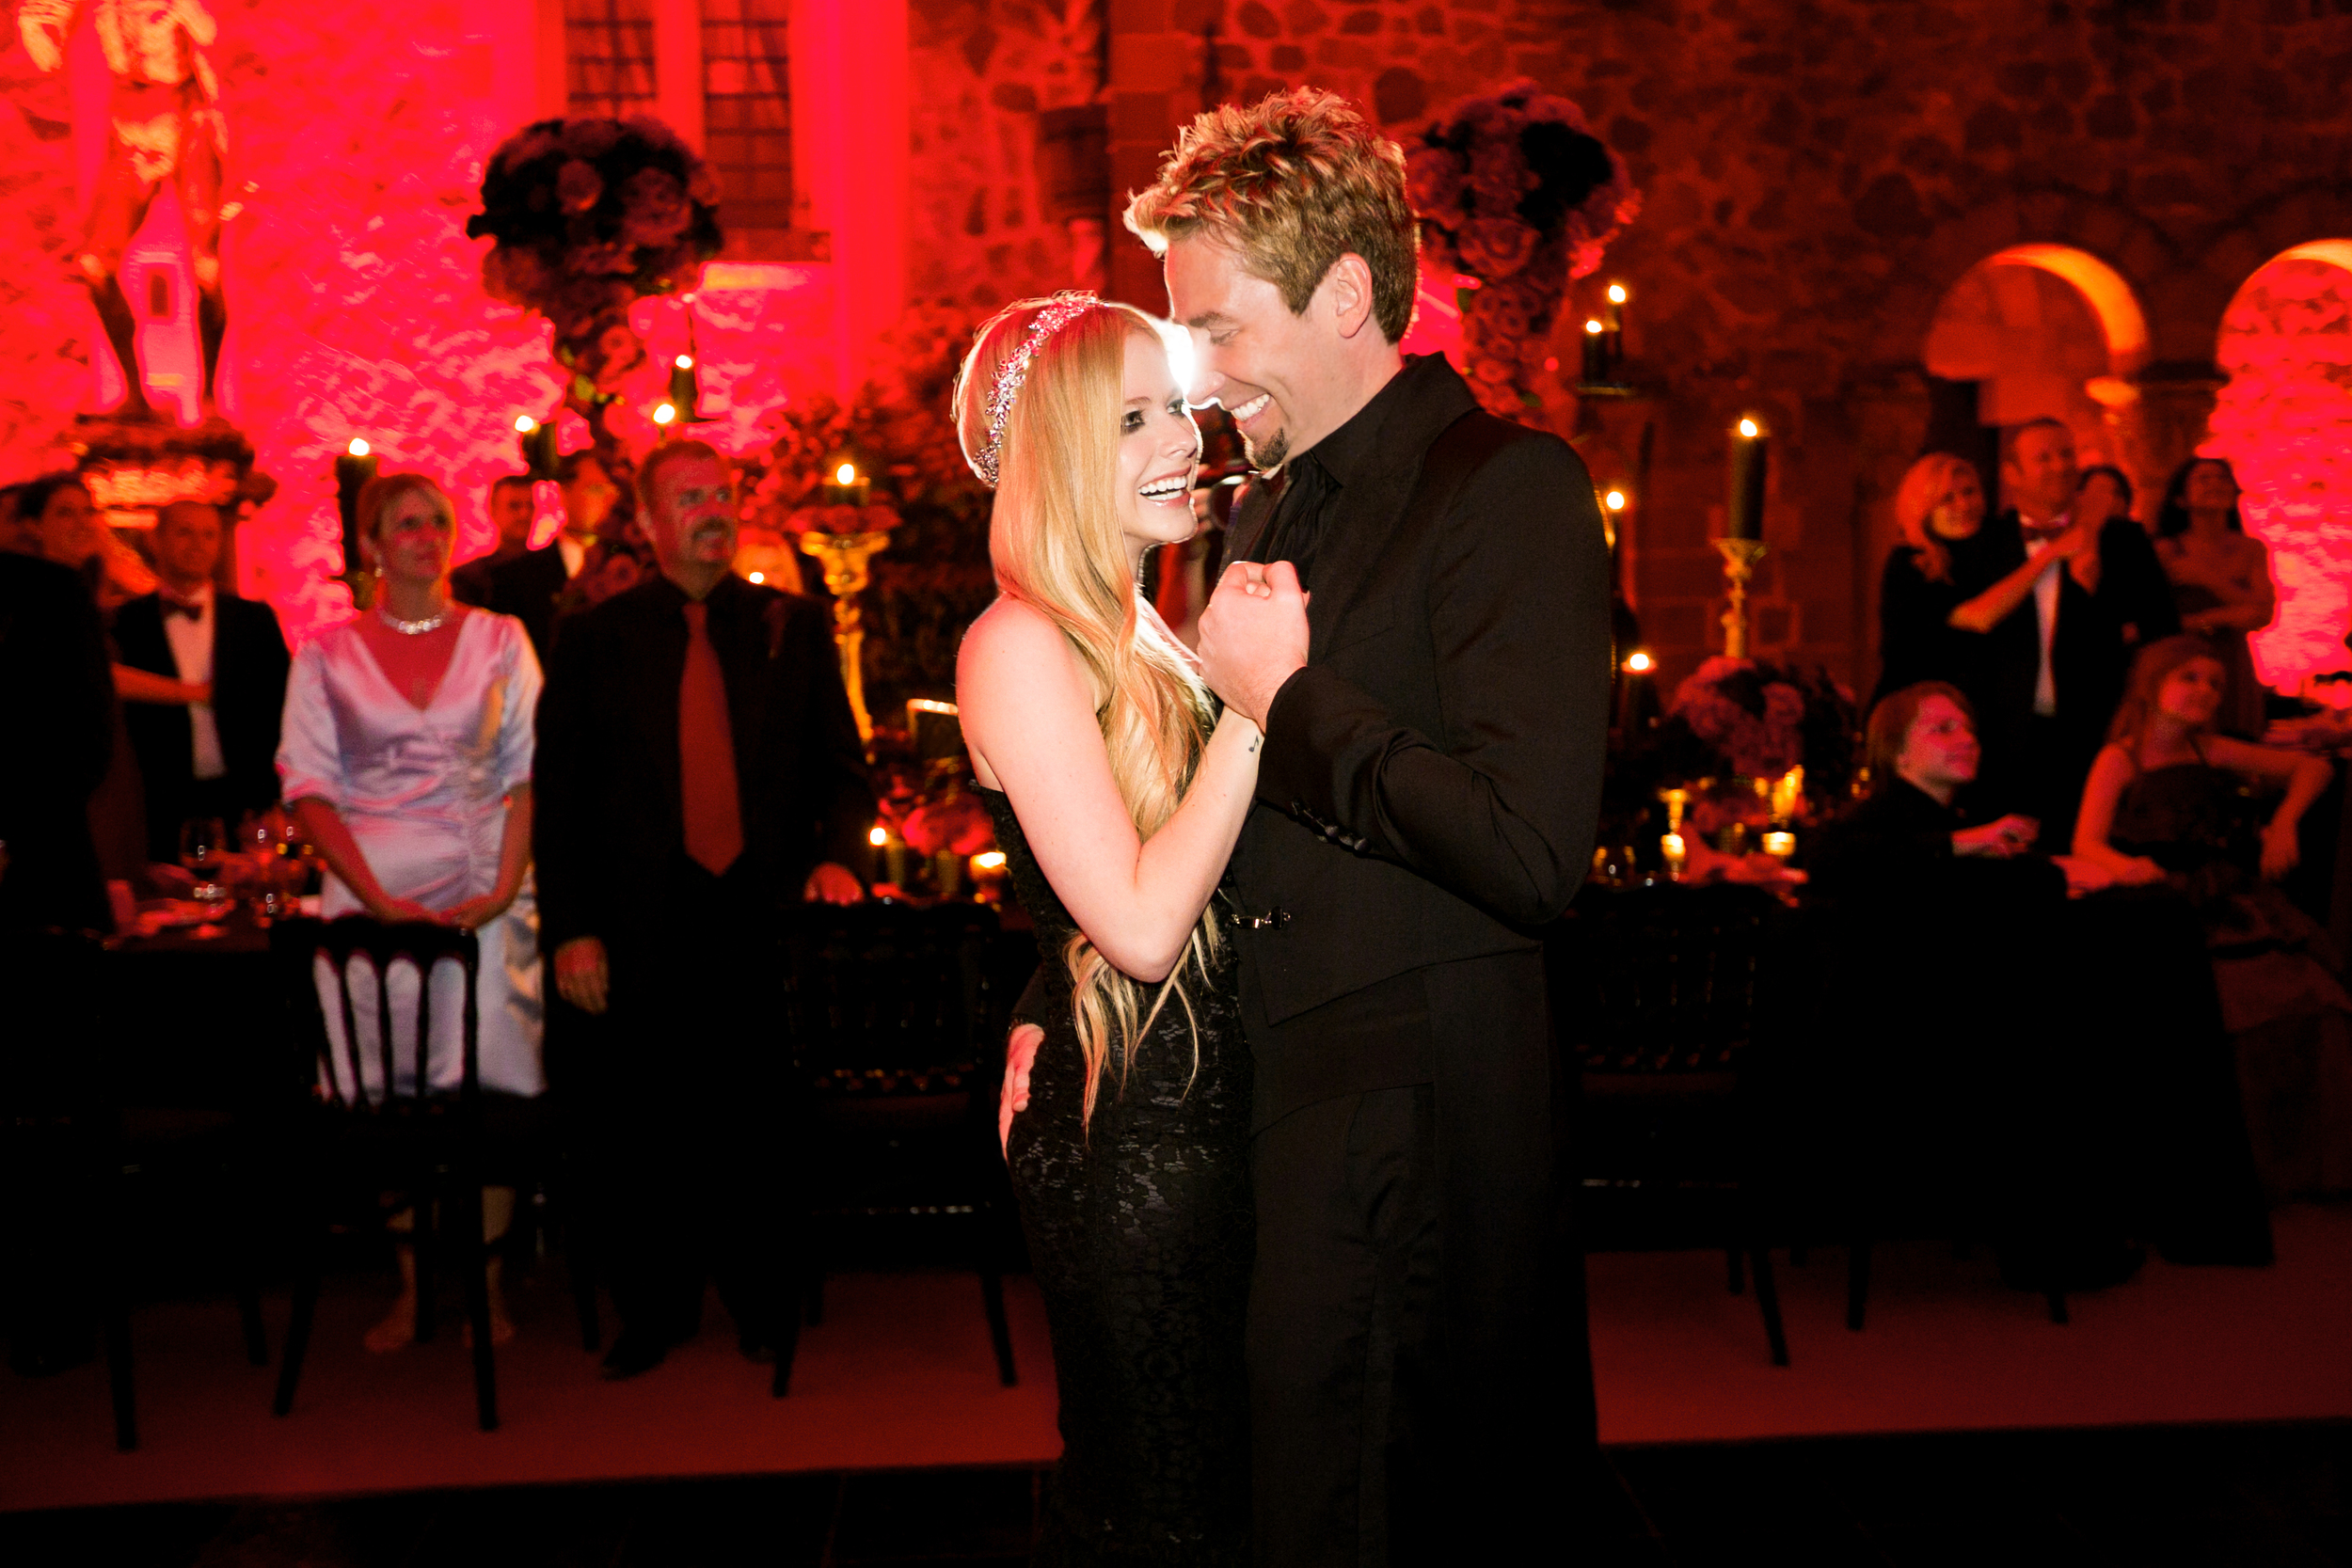 avril lavigne and chad kroeger wedding photography 0002